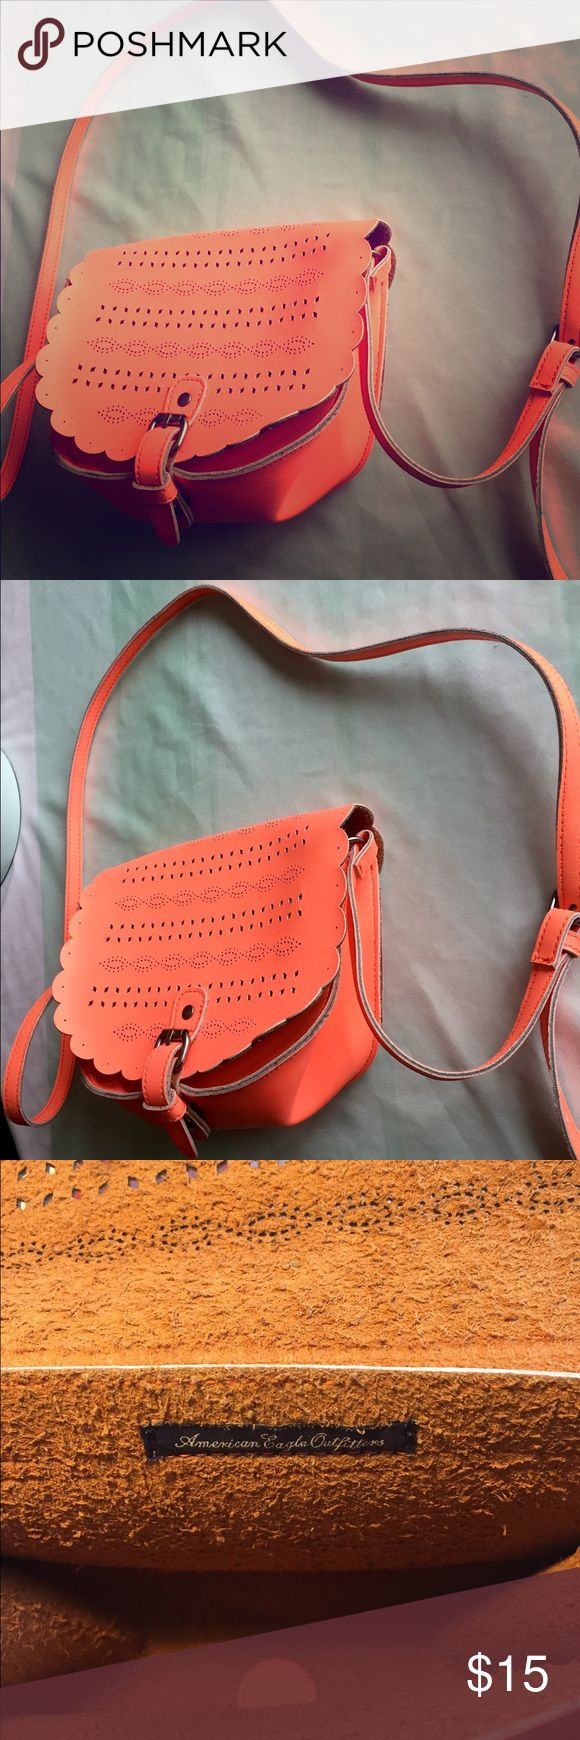 ⛵️AEO Crossbody⛵️ THIS.IS.SO.CUTE!! Bright, almost neon coral crossbody purse from American Eagle. Excellent condition! American Eagle Outfitters Bags Crossbody Bags